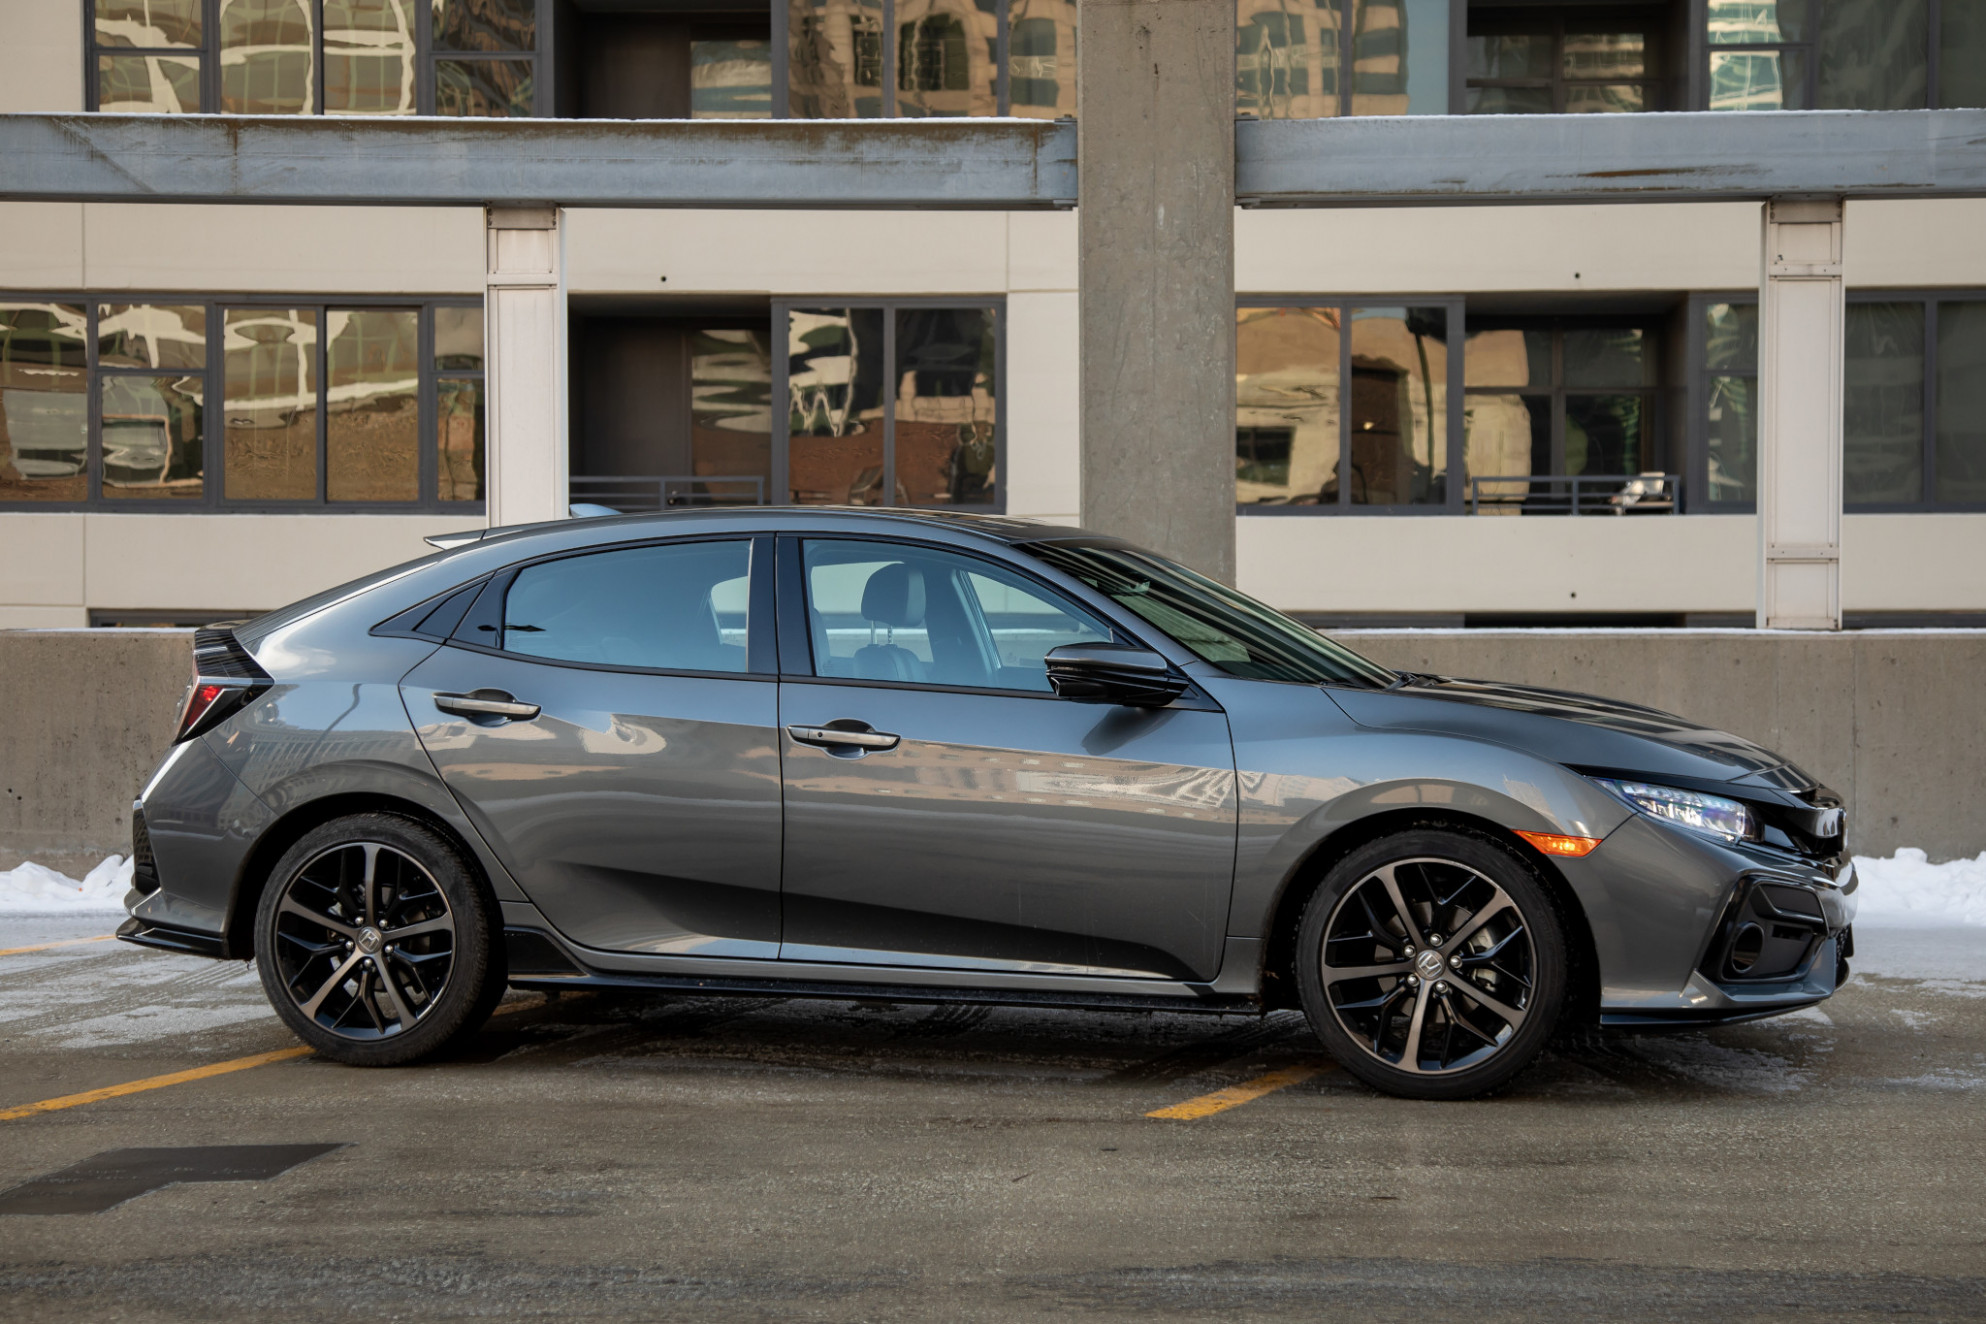 7 Honda Civic Hatchback Review: Still King of Compacts | News ...